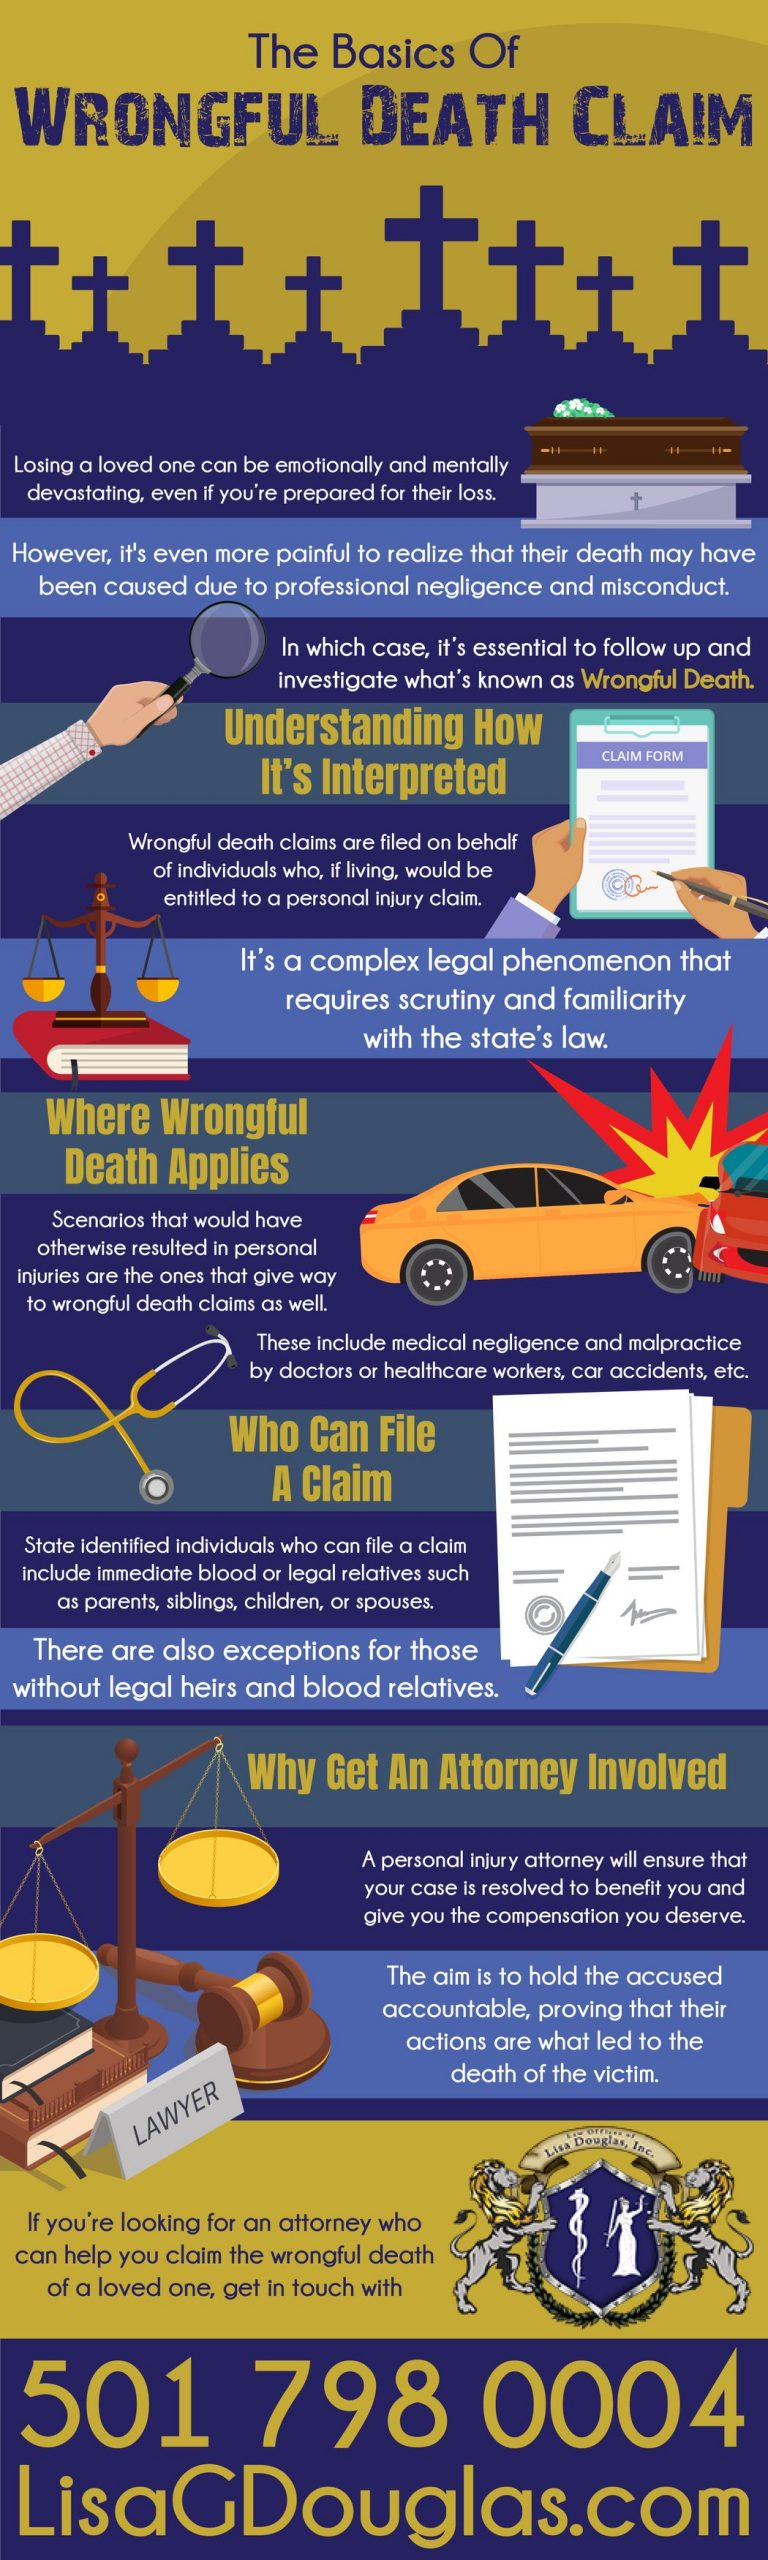 The Basics Of Wrongful Death Claim